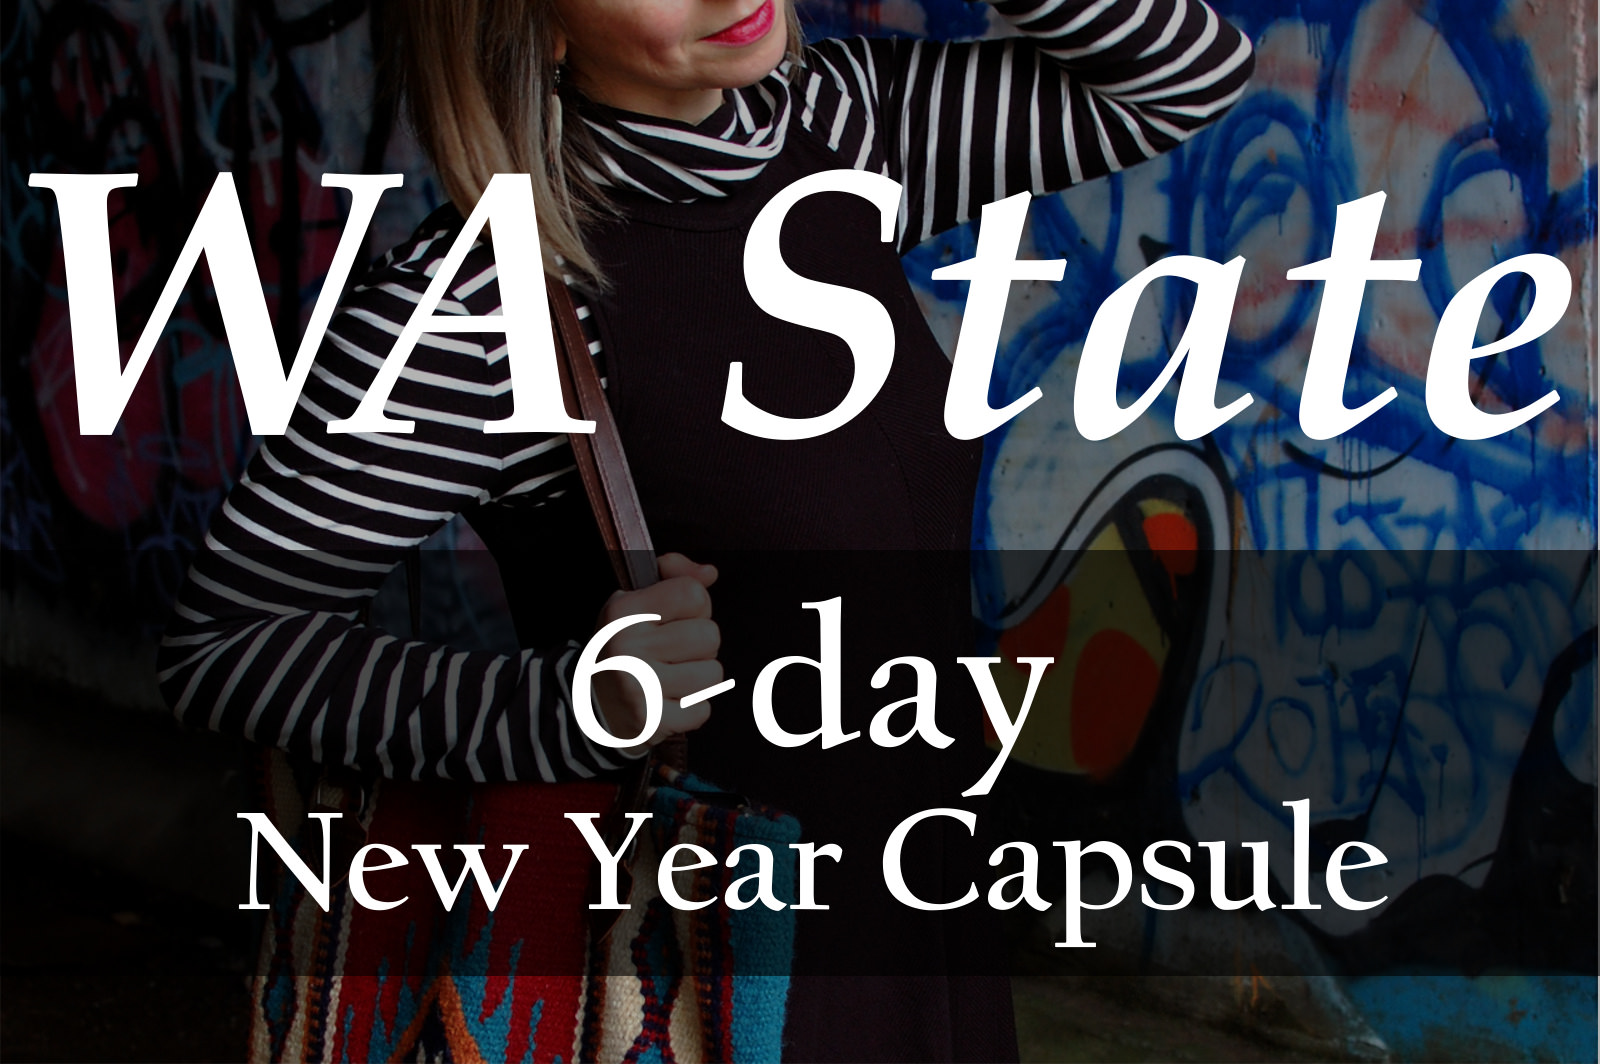 capsule wardrobe daily outfit blog ootd